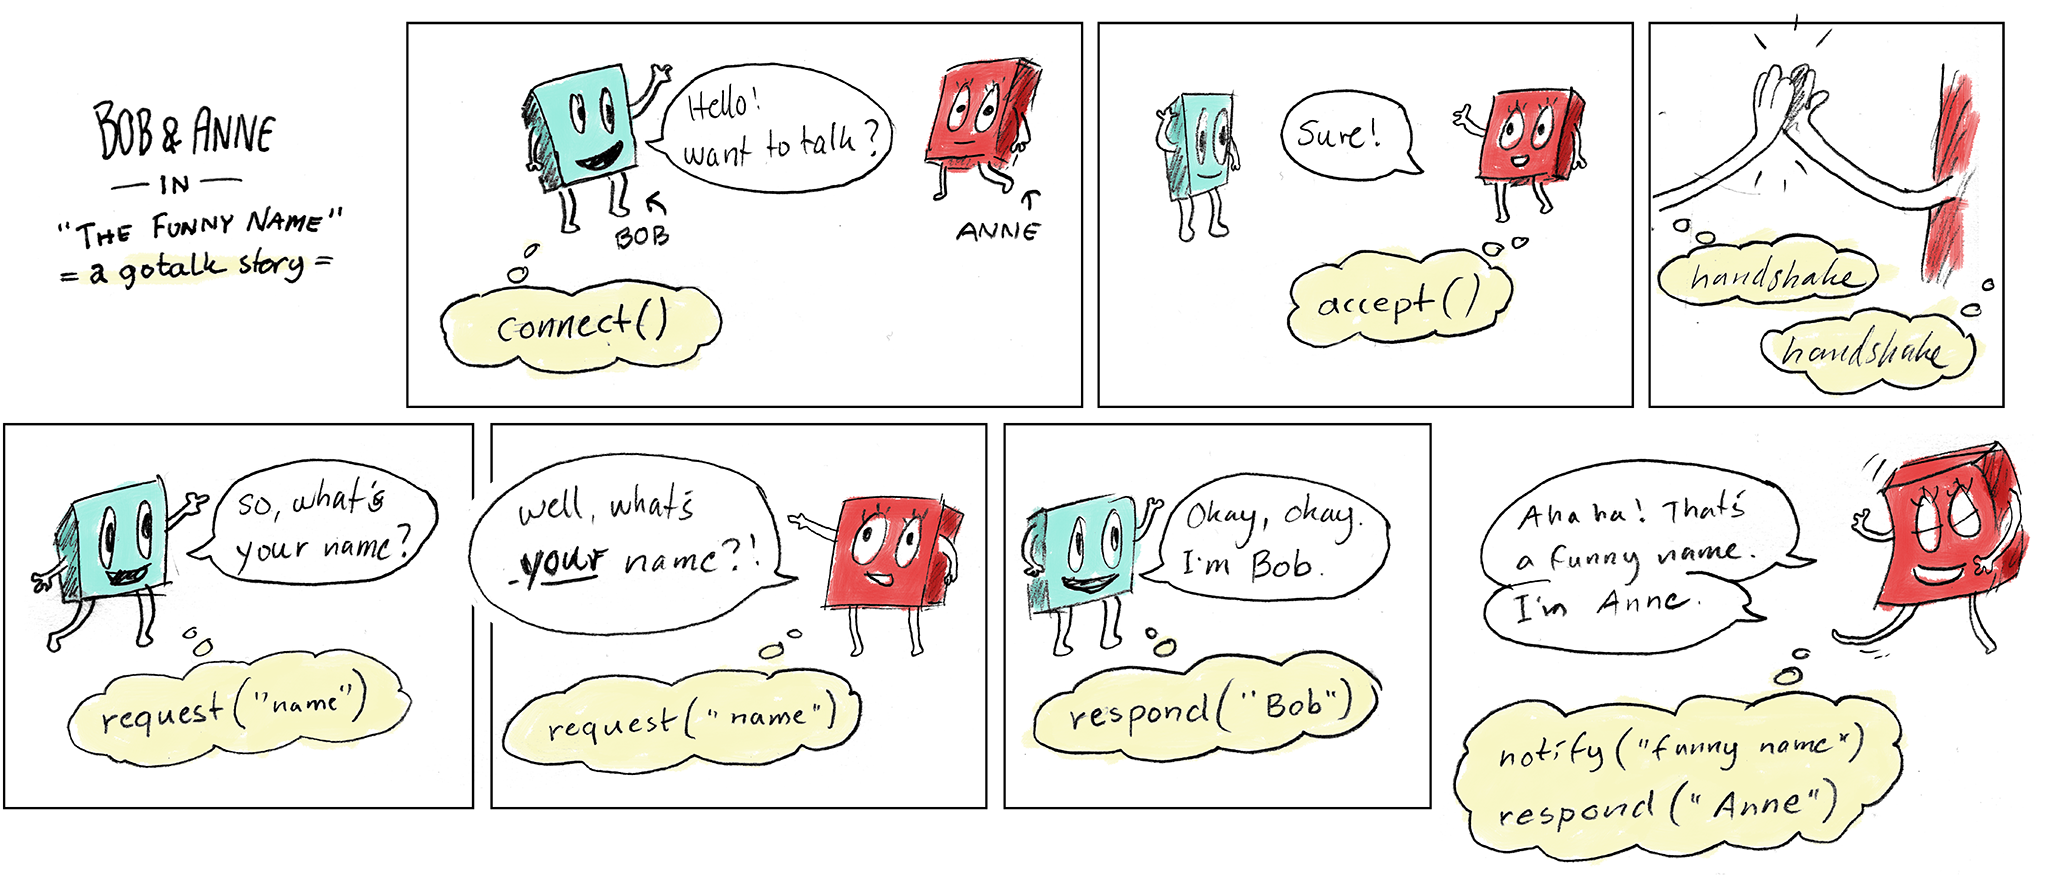 A terribly boring amateur comic strip